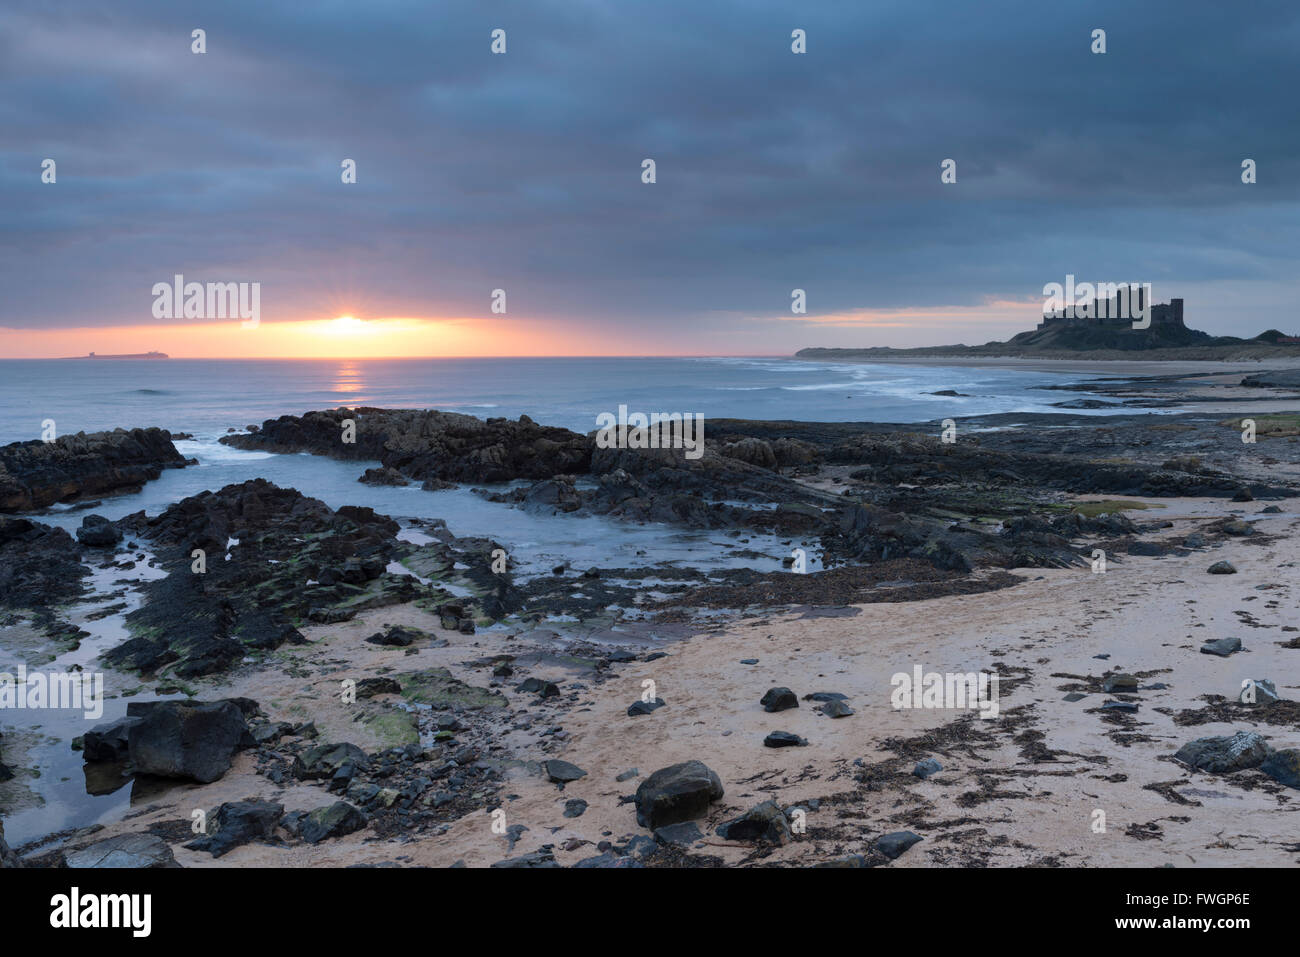 Sunrise at Bamburgh, Northumberland, England, United Kingdom, Europe - Stock Image